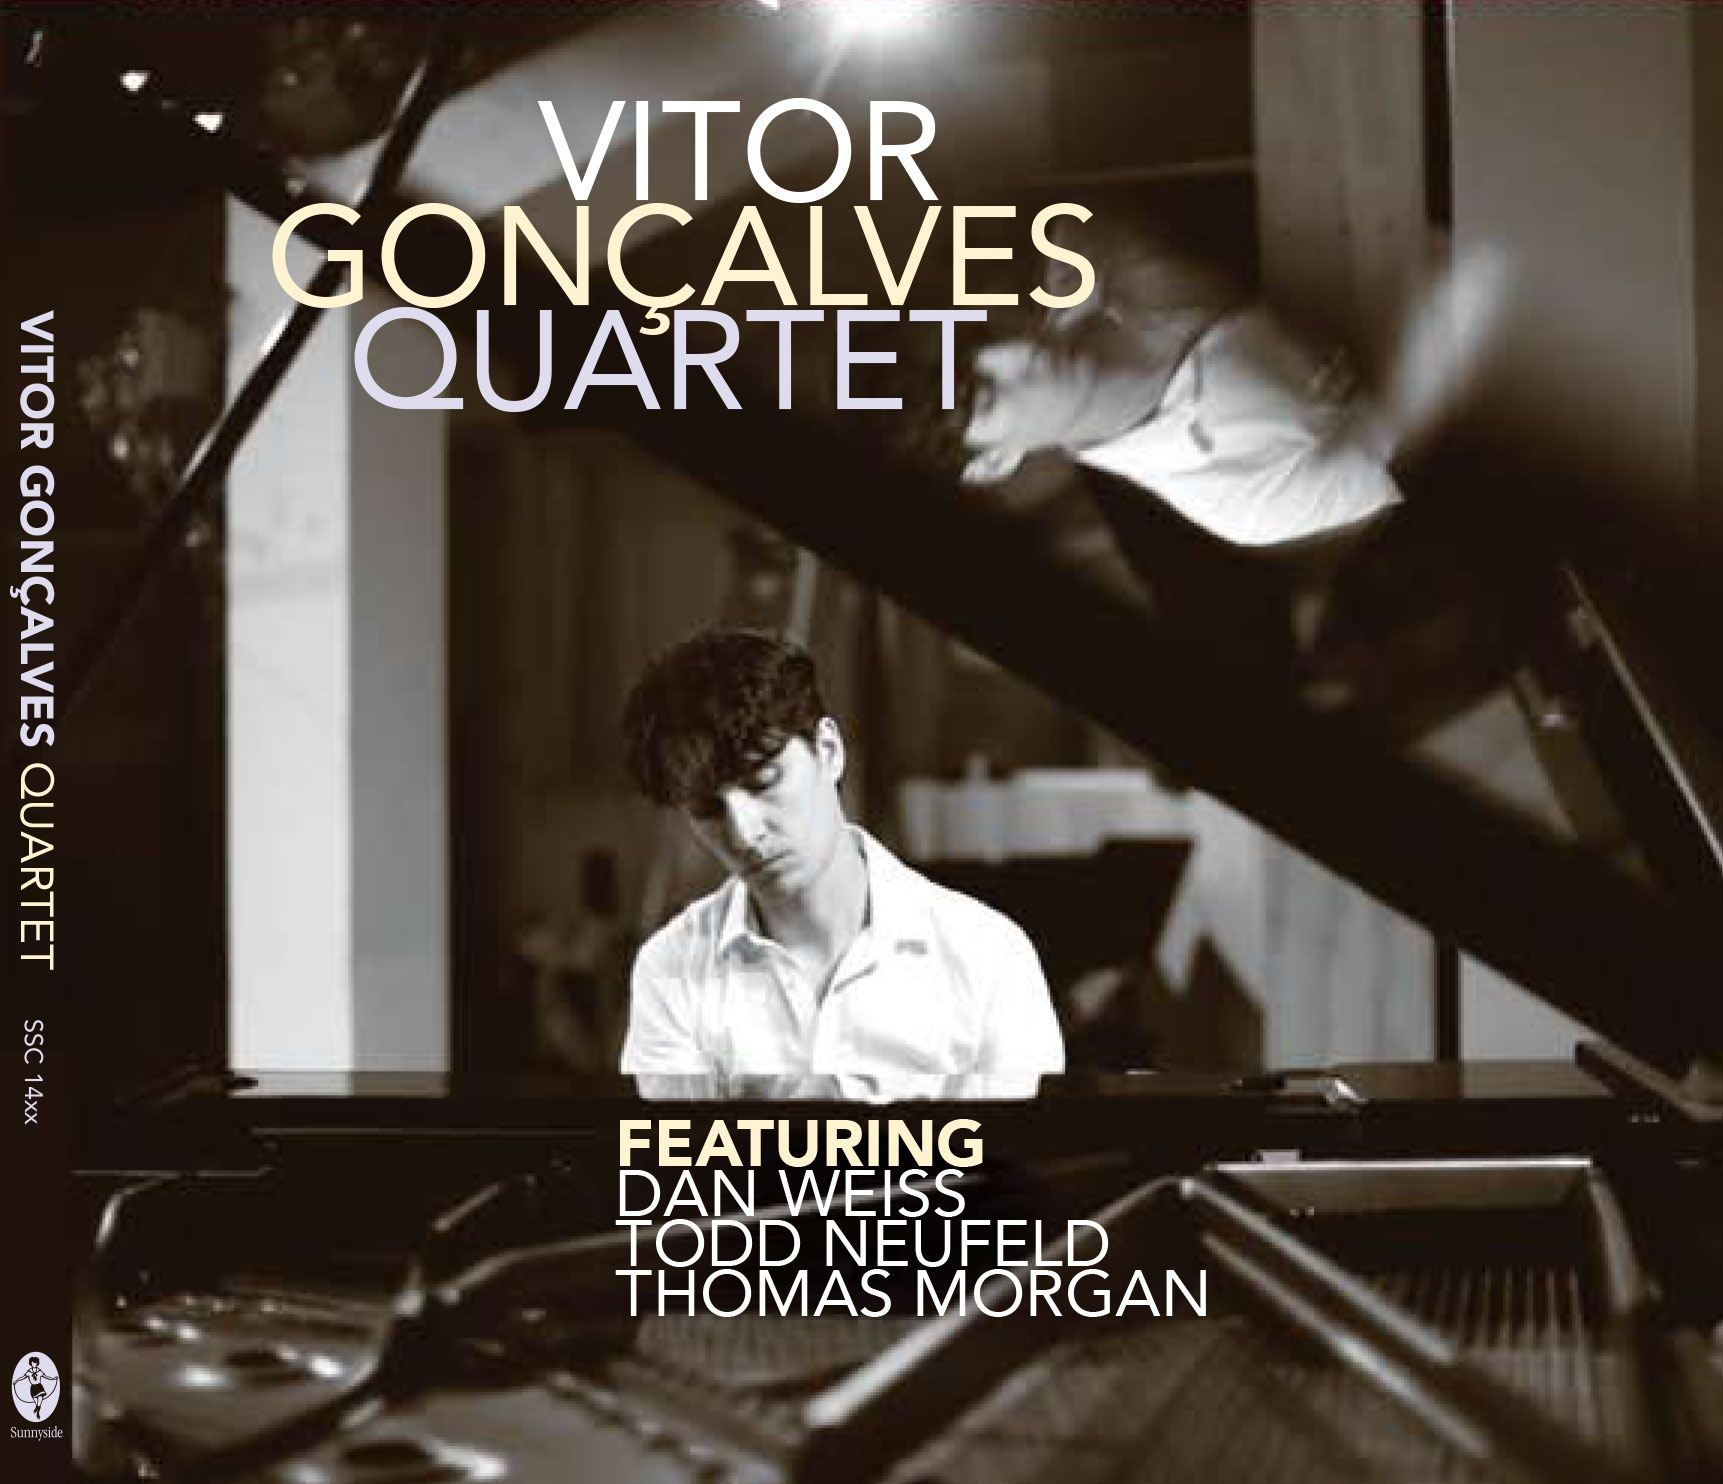 vitor-goncalves-quartet-album-cover-2017